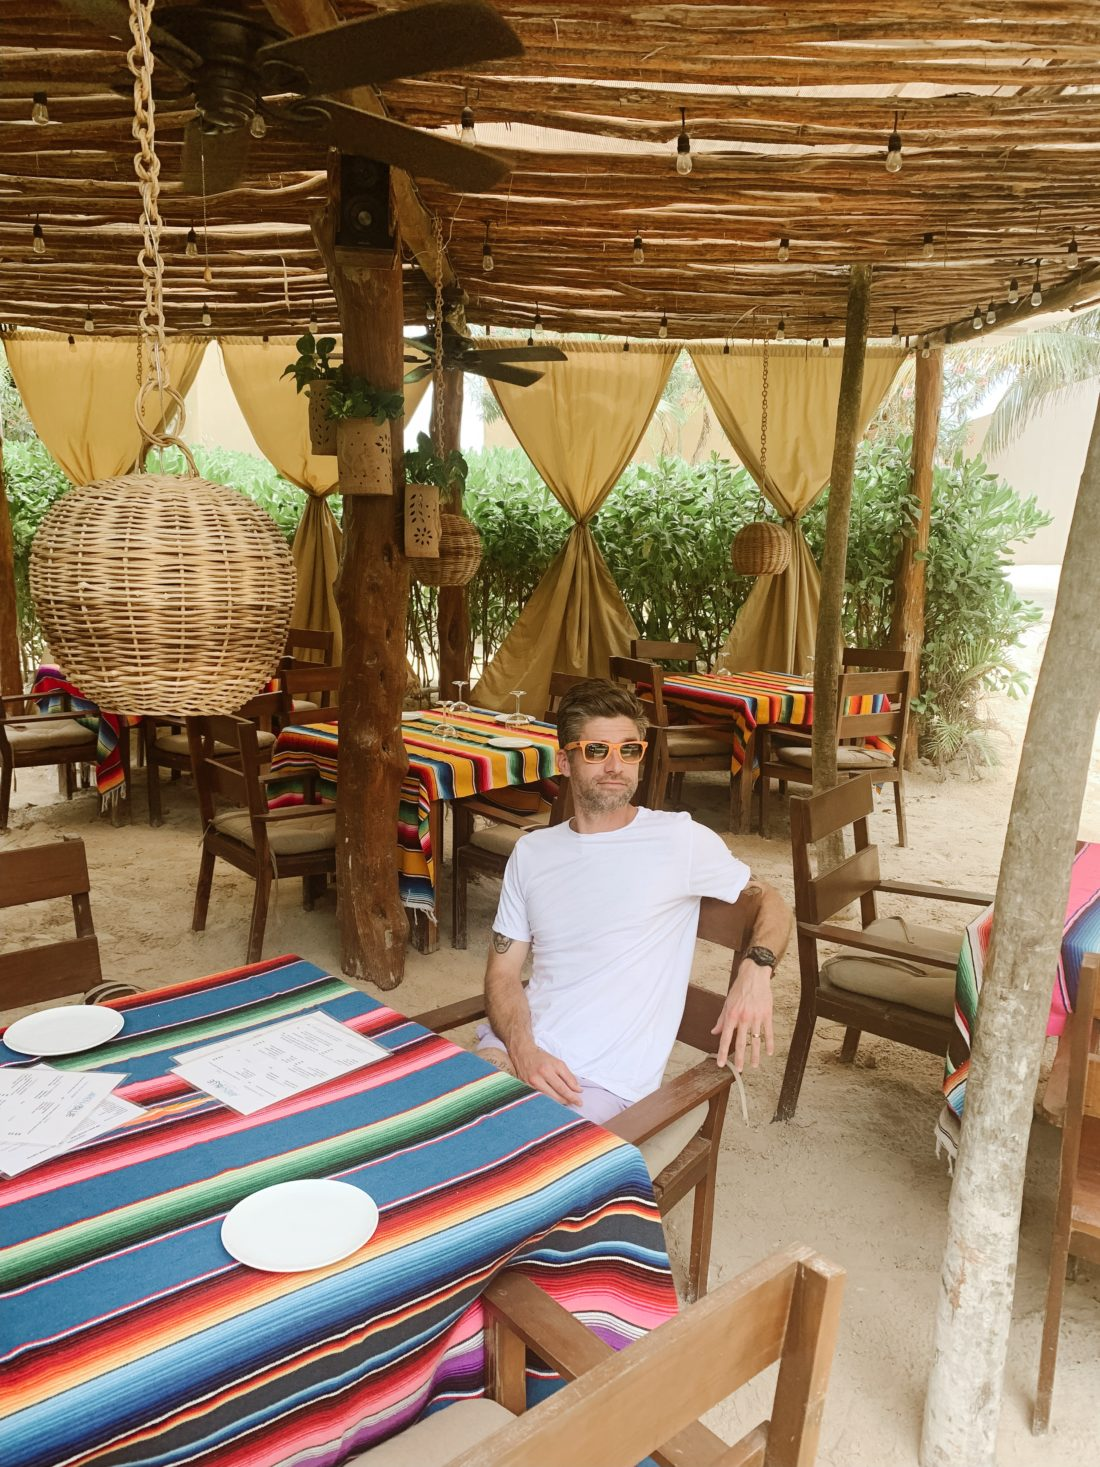 Eva Amurri Martino's Husband Kyle enjoying lunch in Tulum Mexico